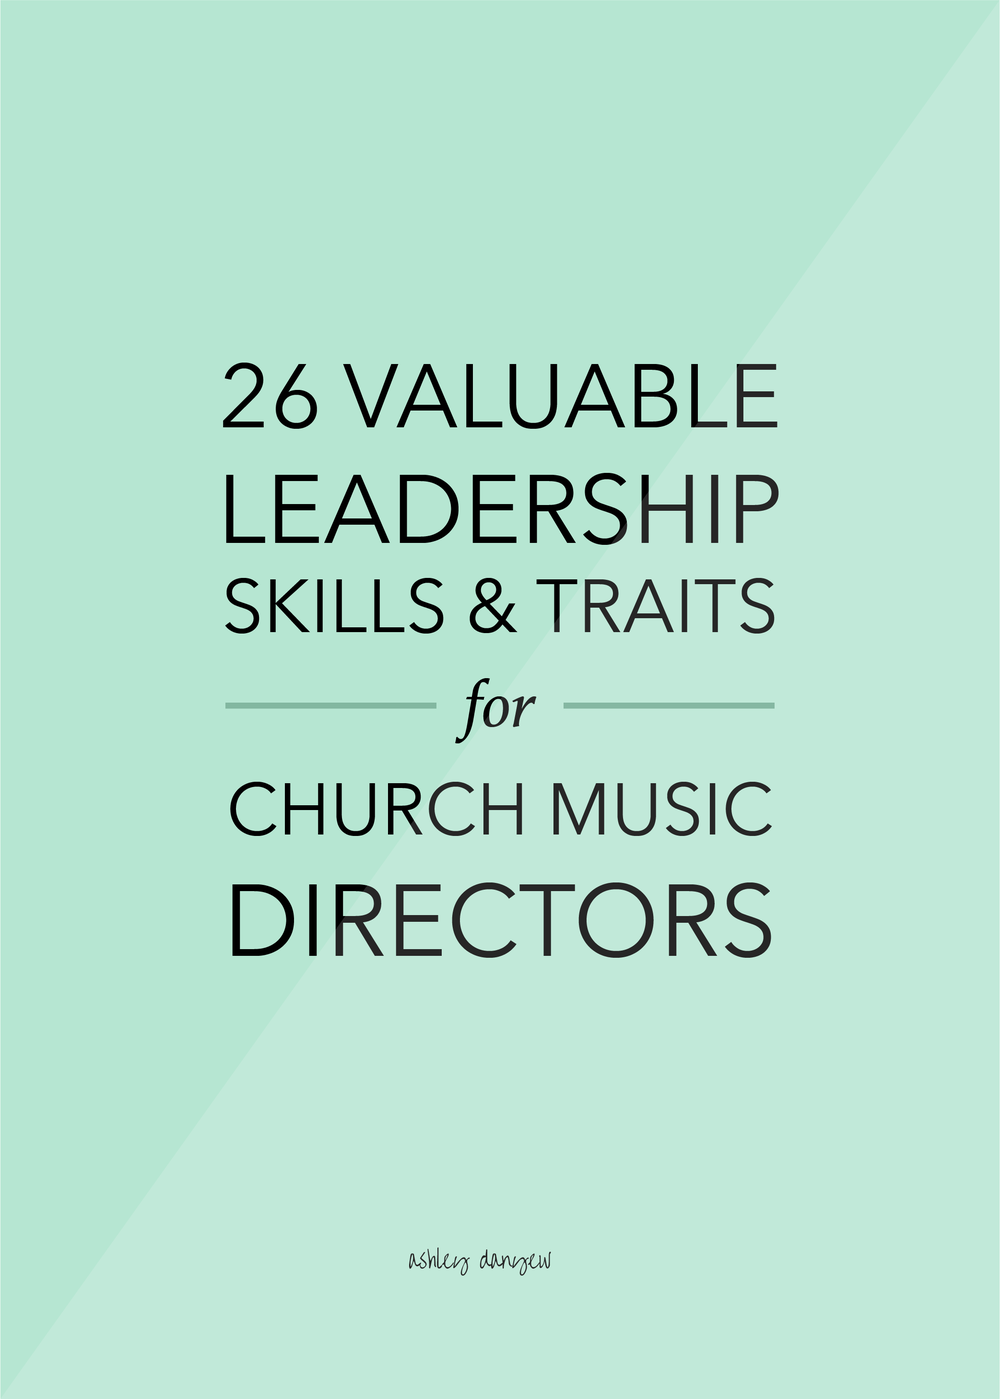 26 Valuable Leadership Skills and Traits for Church Musicians-09.png